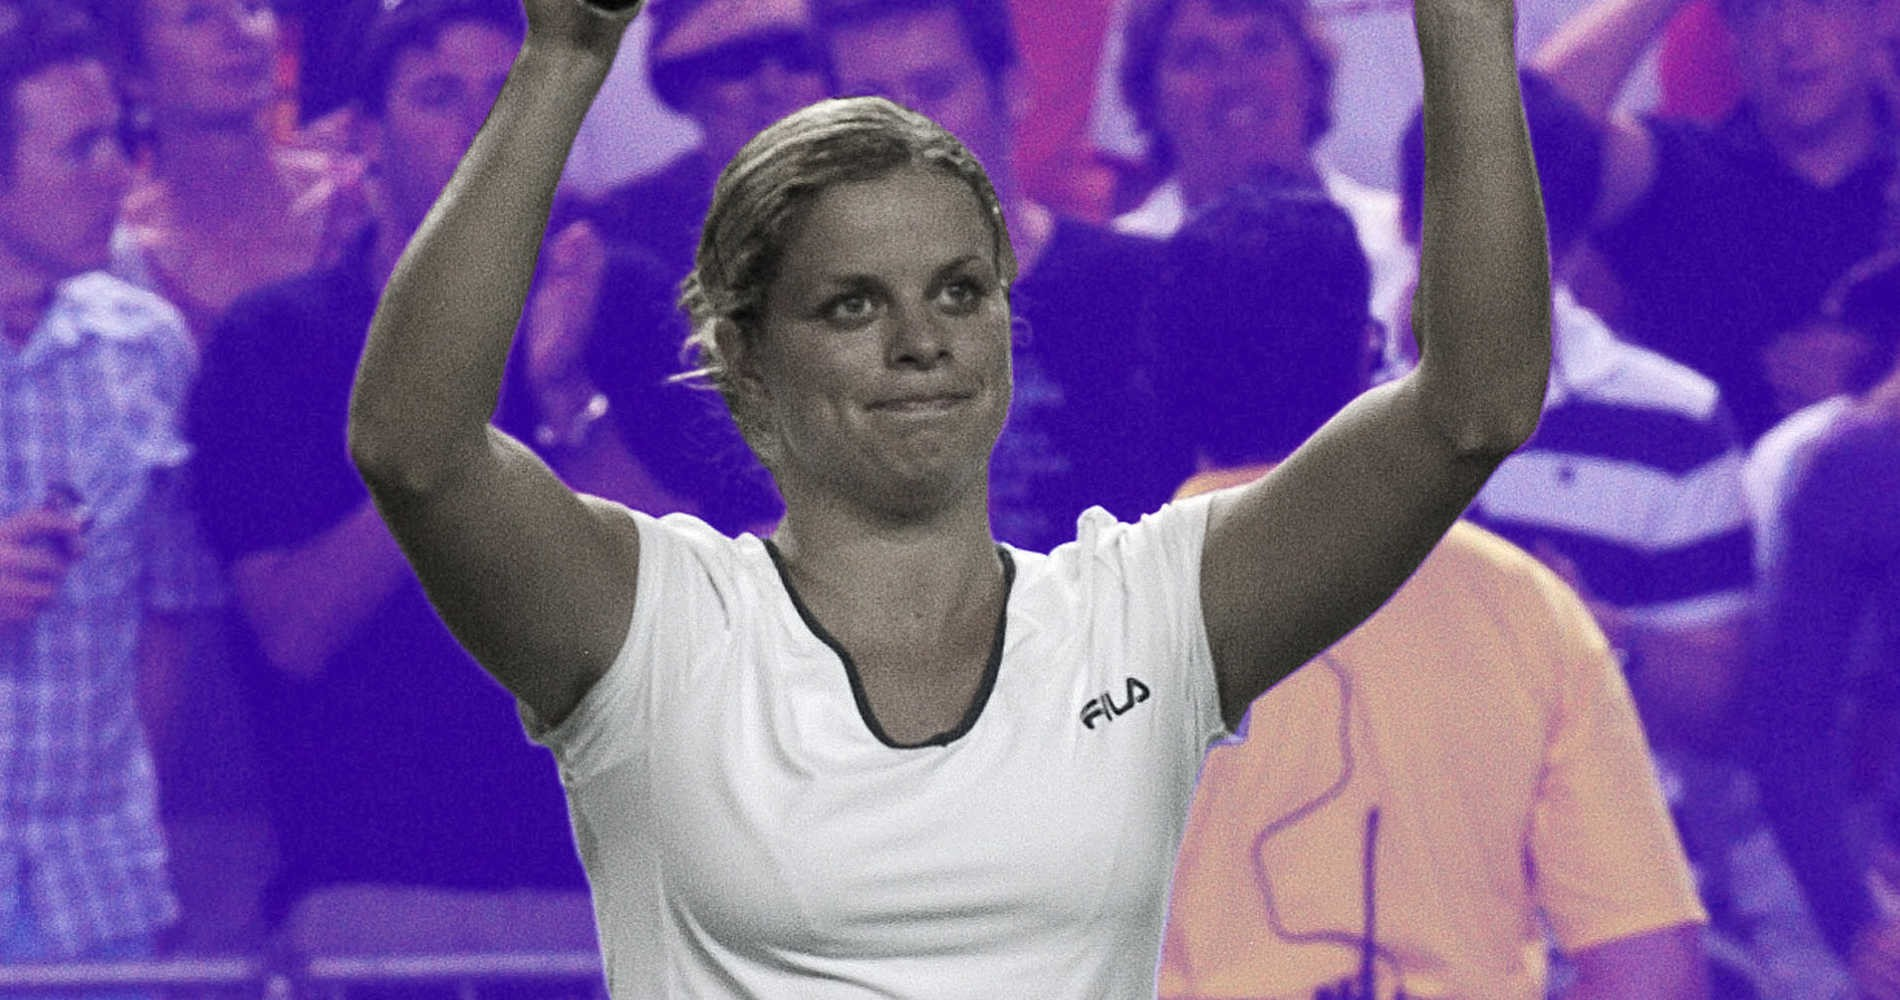 Kim Clijsters, On This Day